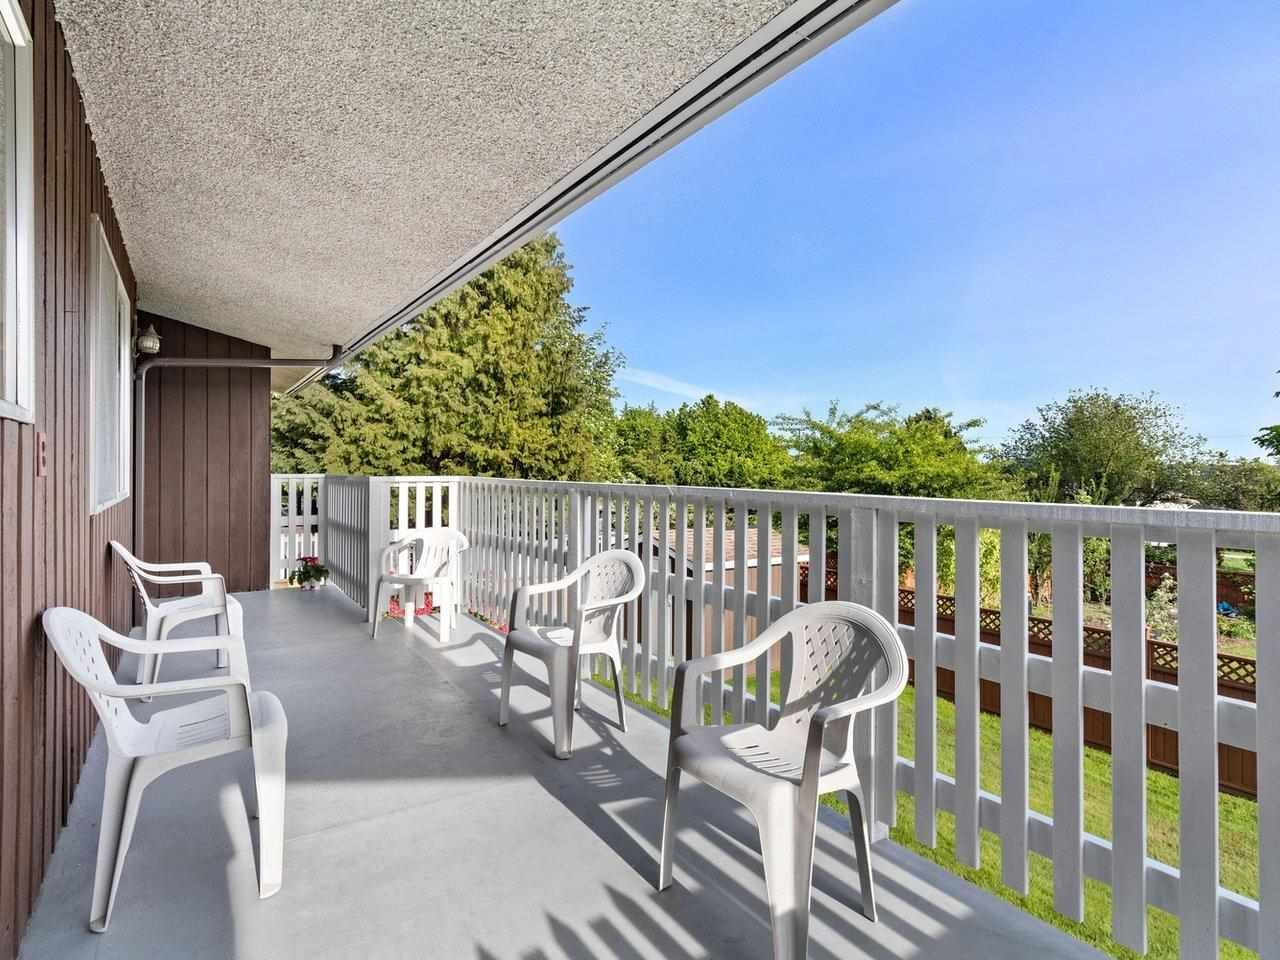 Photo 29: Photos: 1510 CHARLAND Avenue in Coquitlam: Central Coquitlam House for sale : MLS®# R2577681